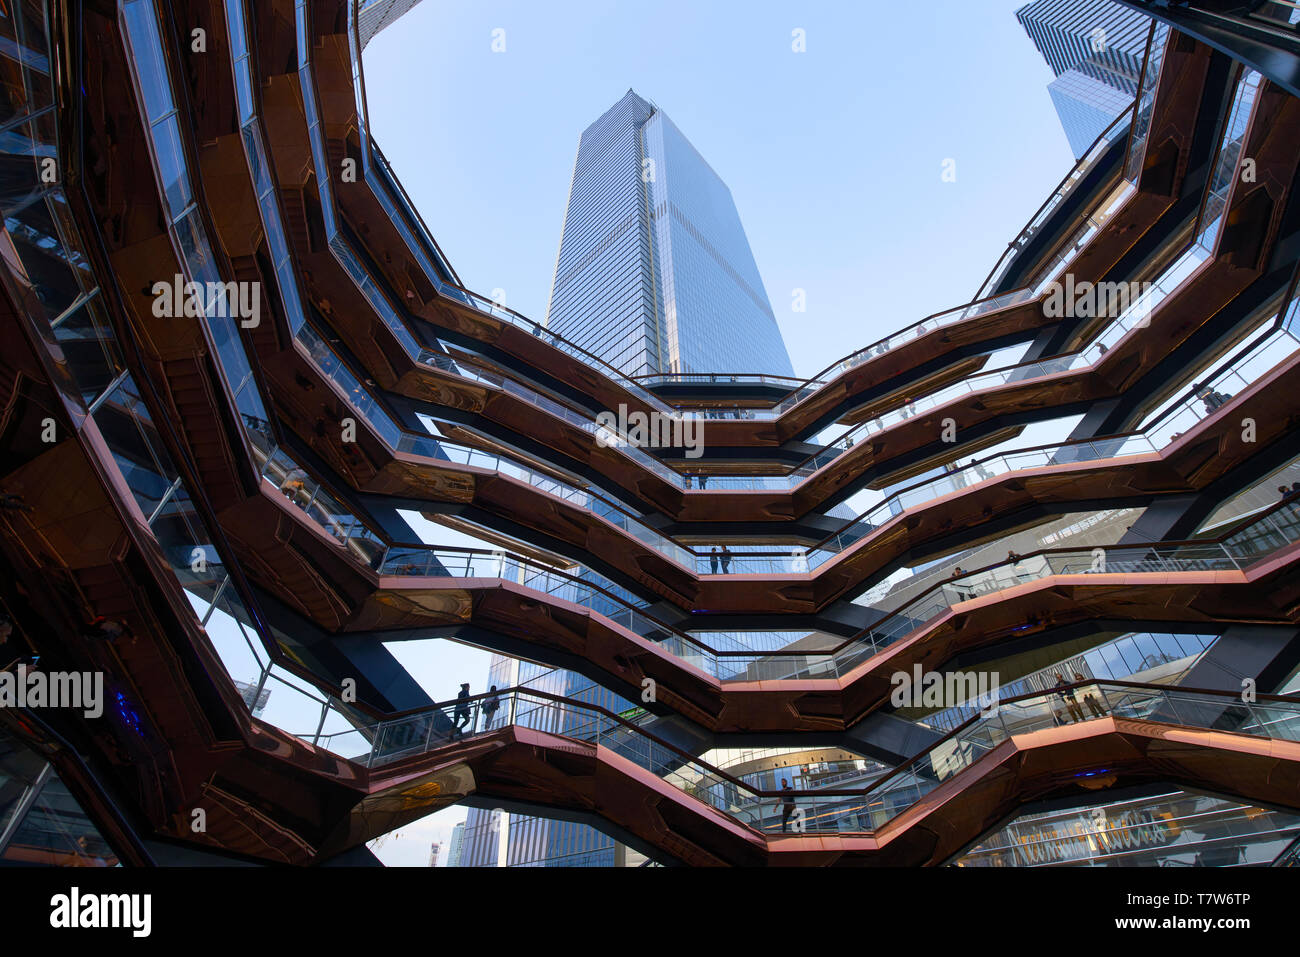 Looking up inside the Vessel interactive artwork at Hudson Yard plaza in New York City Stock Photo